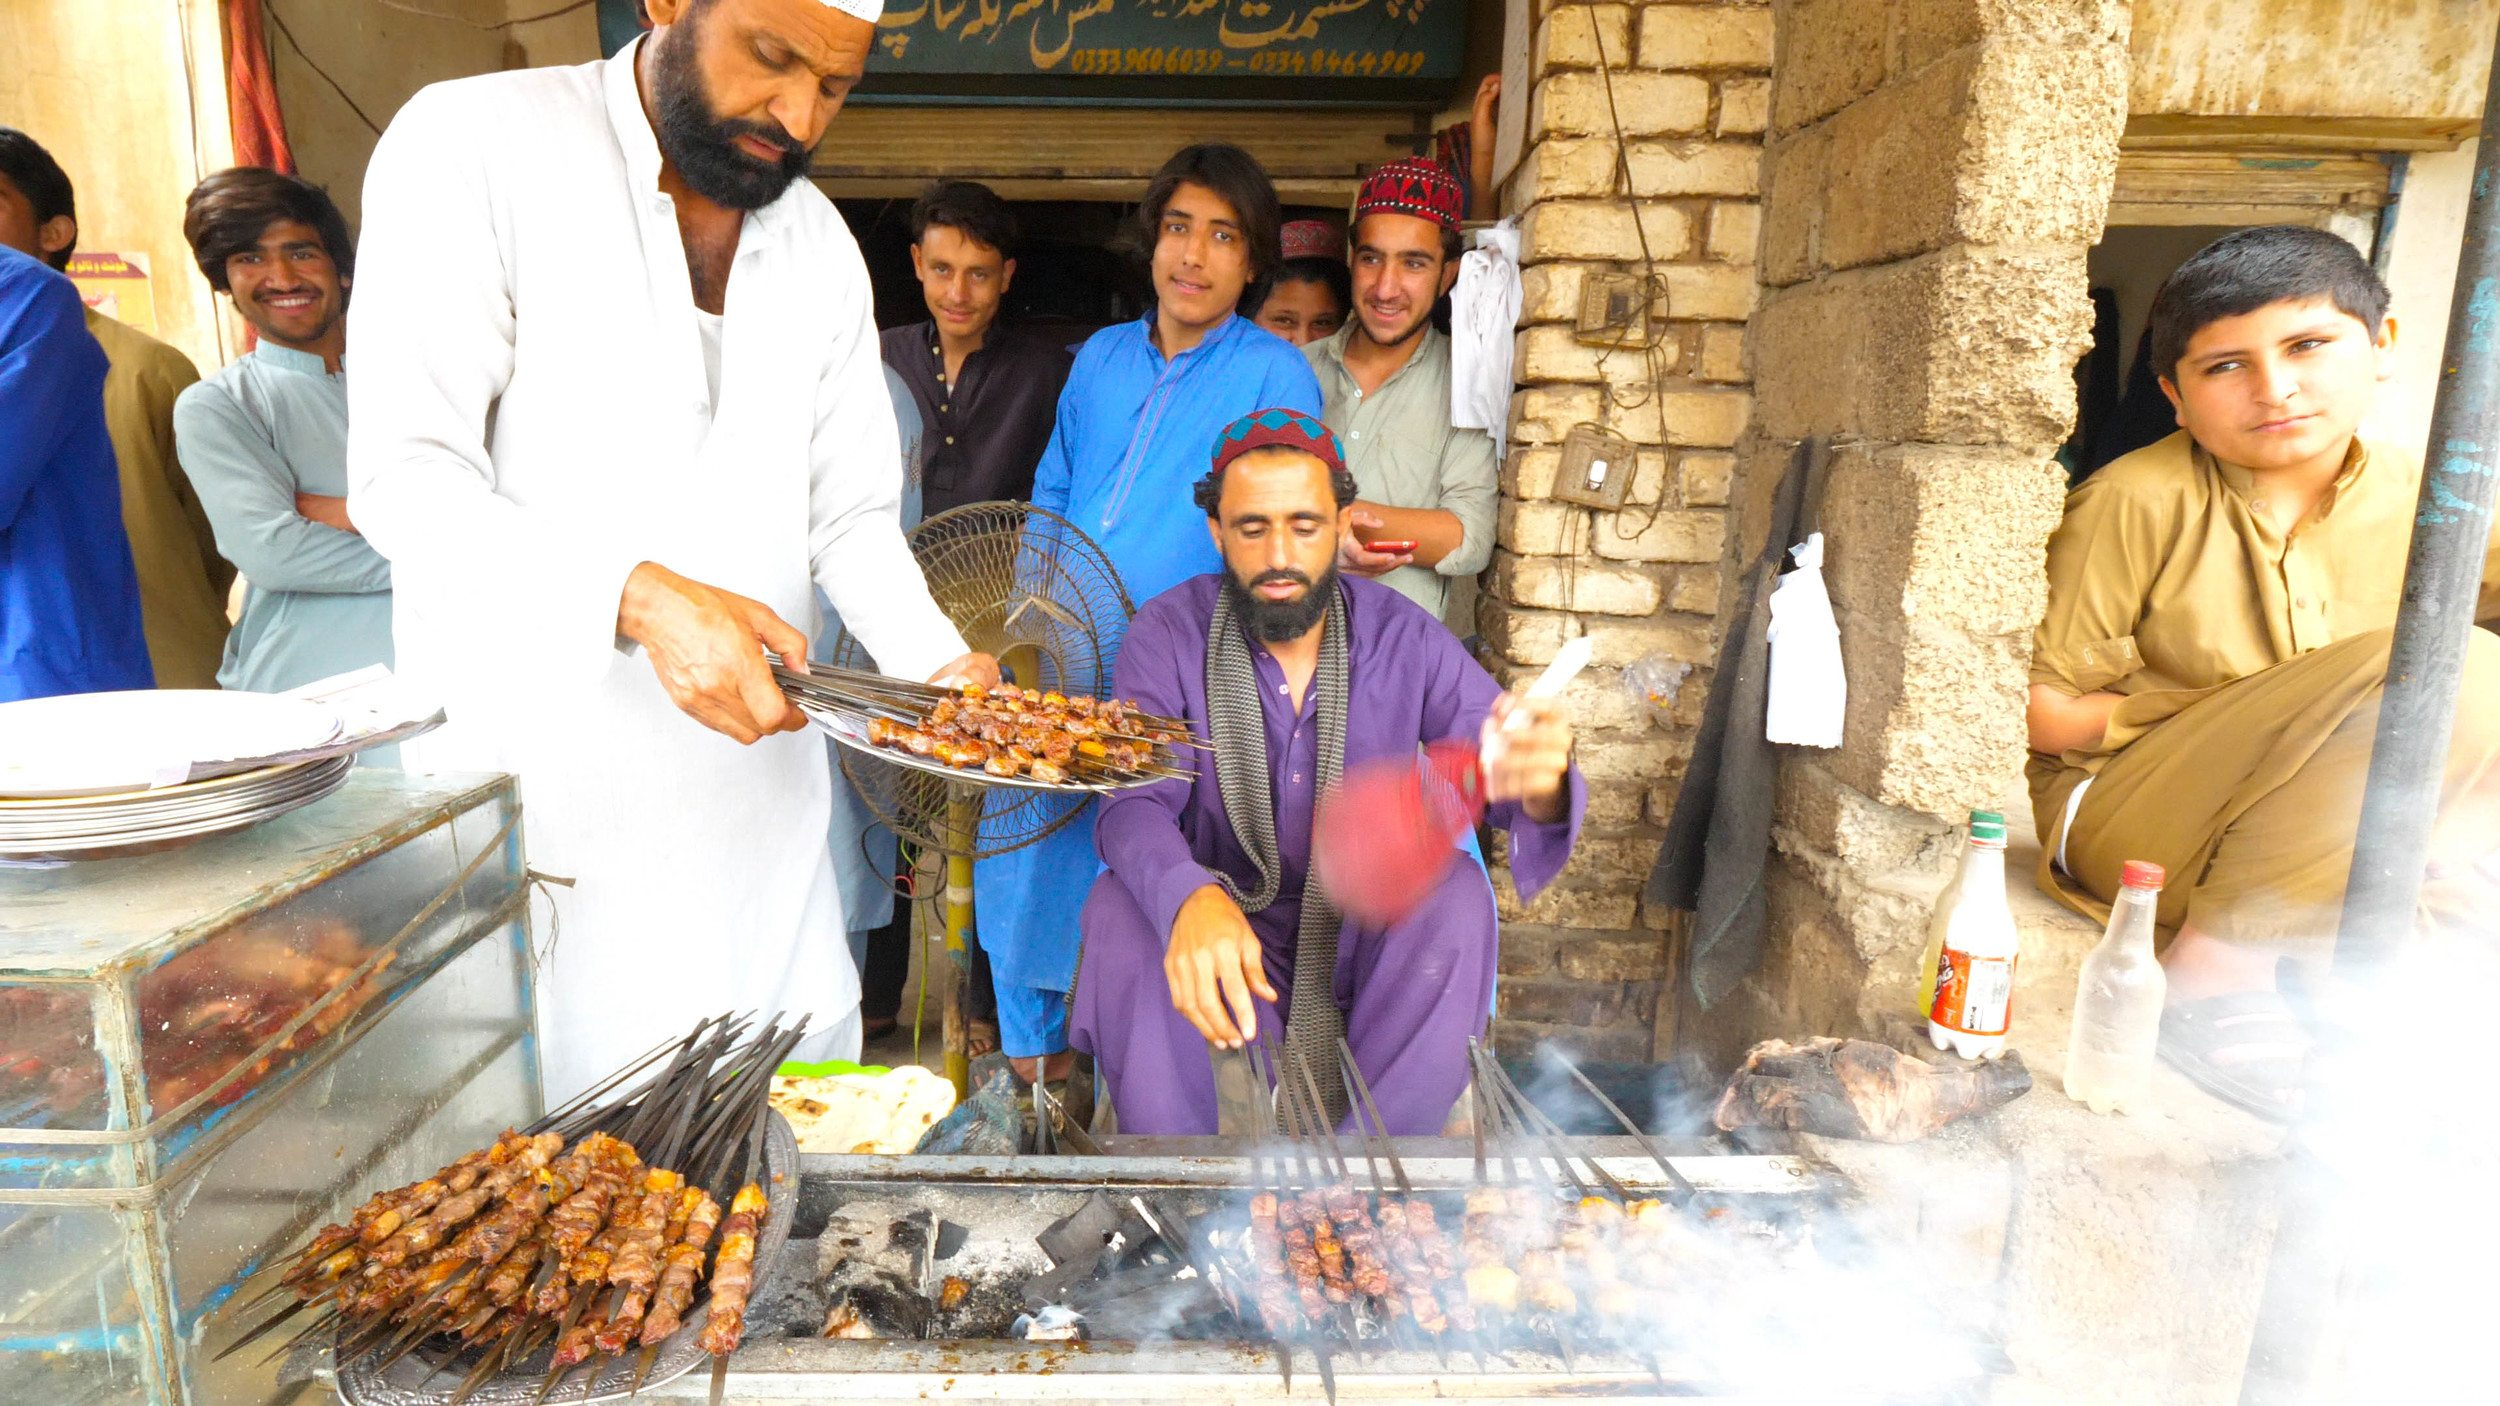 Street food vendor on our drive up to miranshah selling beef kababs